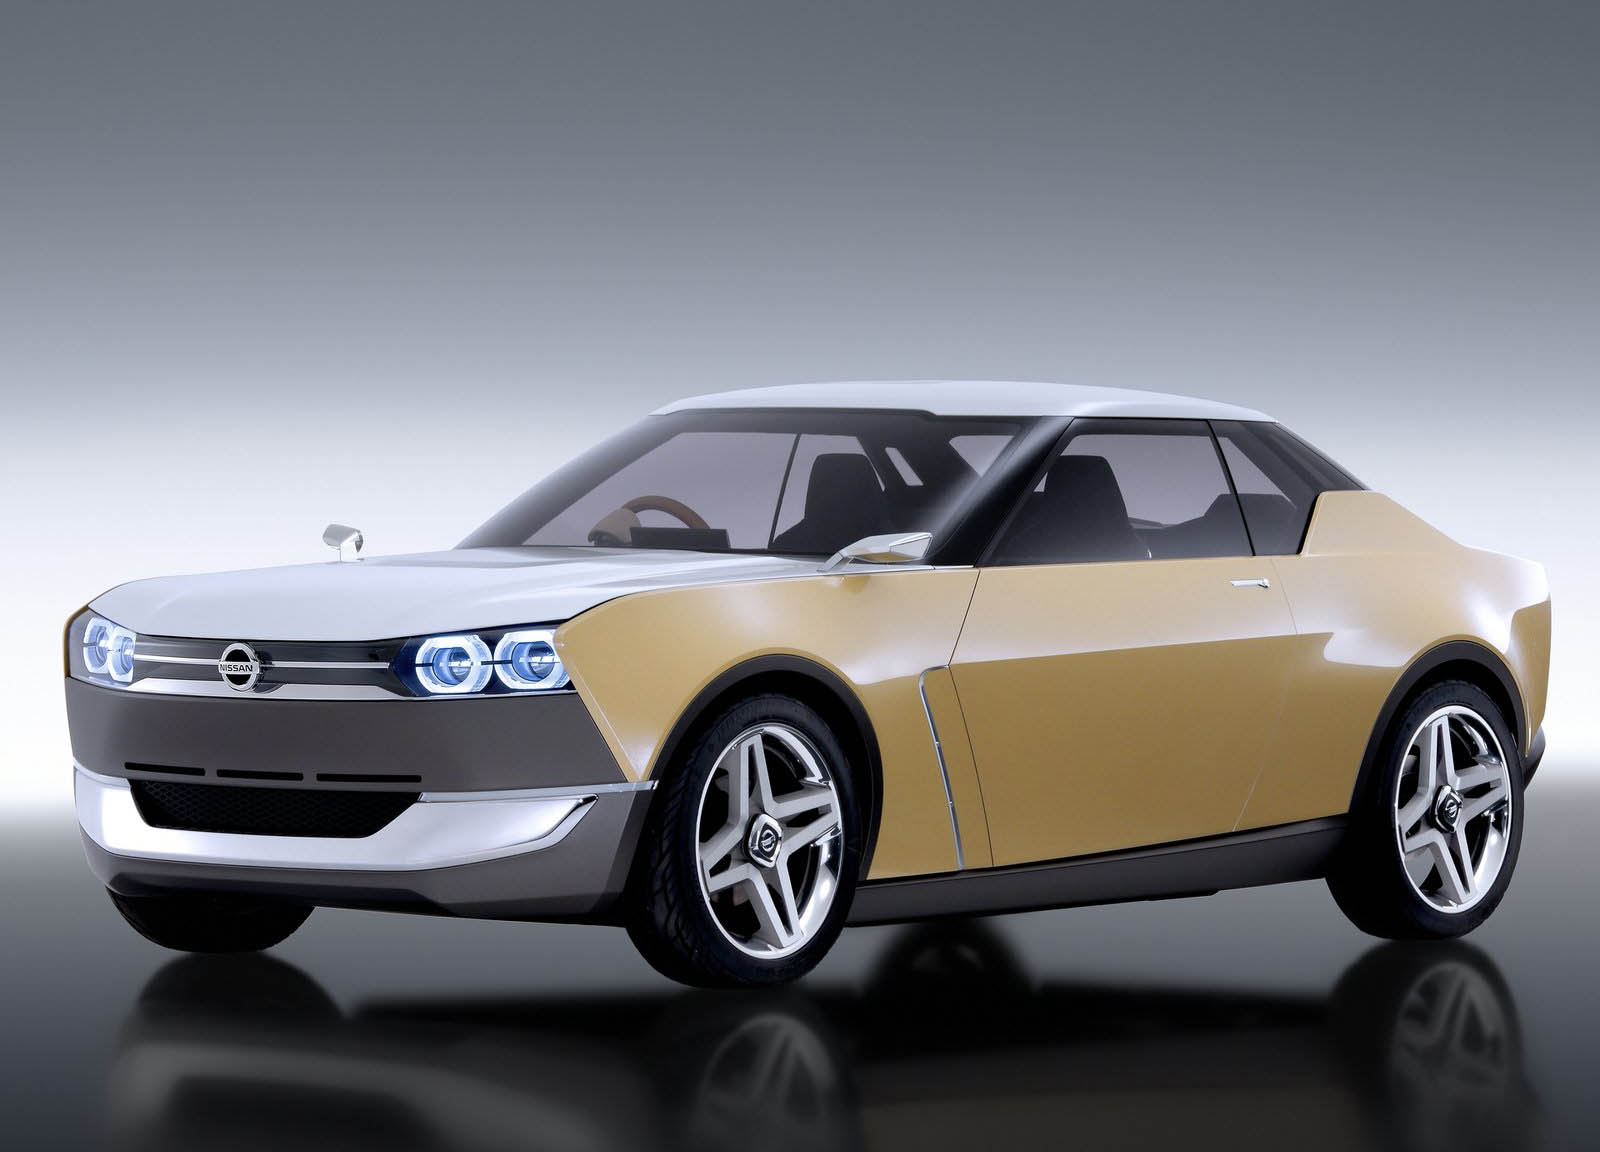 2021 Nissan Silvia Price, Design and Review